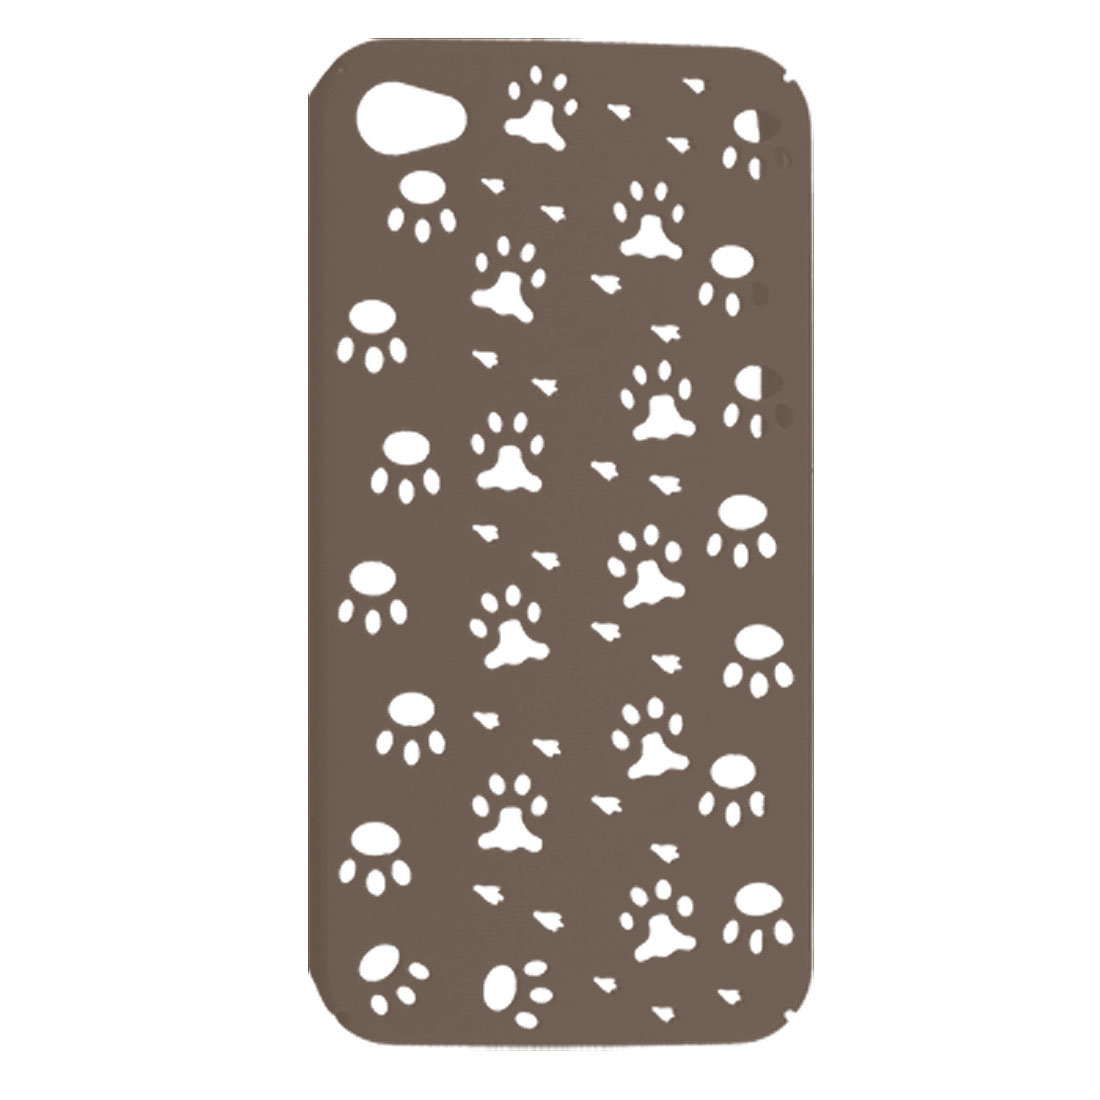 Chocolate Rubberized Plastic Paw Hole Style Back Case + 12V Car Charger for iPhone 4 4G